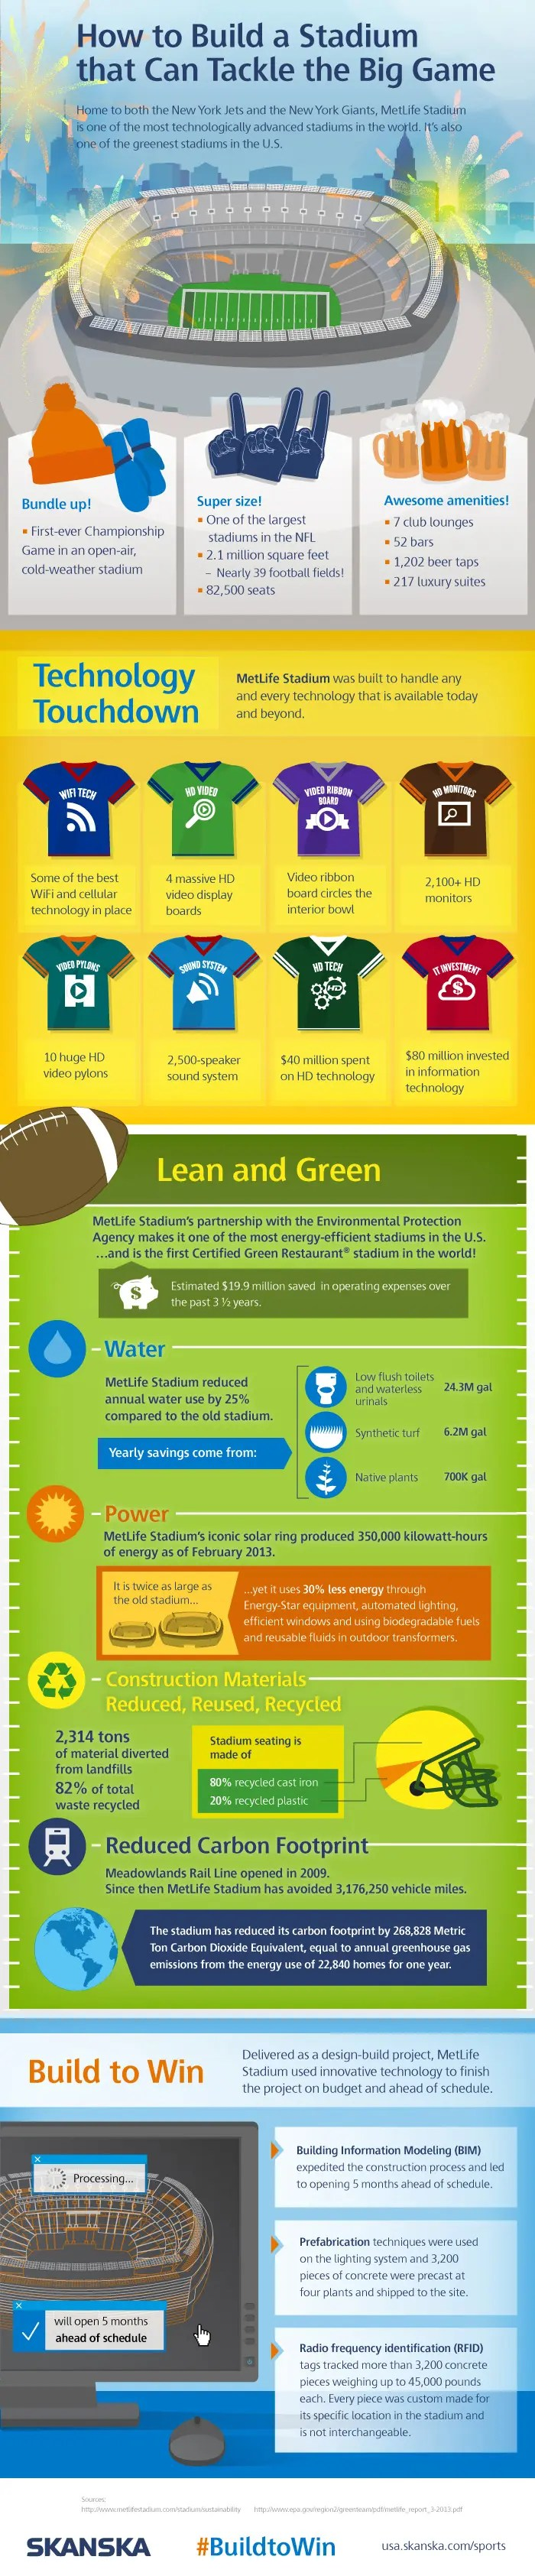 MetLife Stadium, Solar Powered and Home of the 'Green' Super Bowl